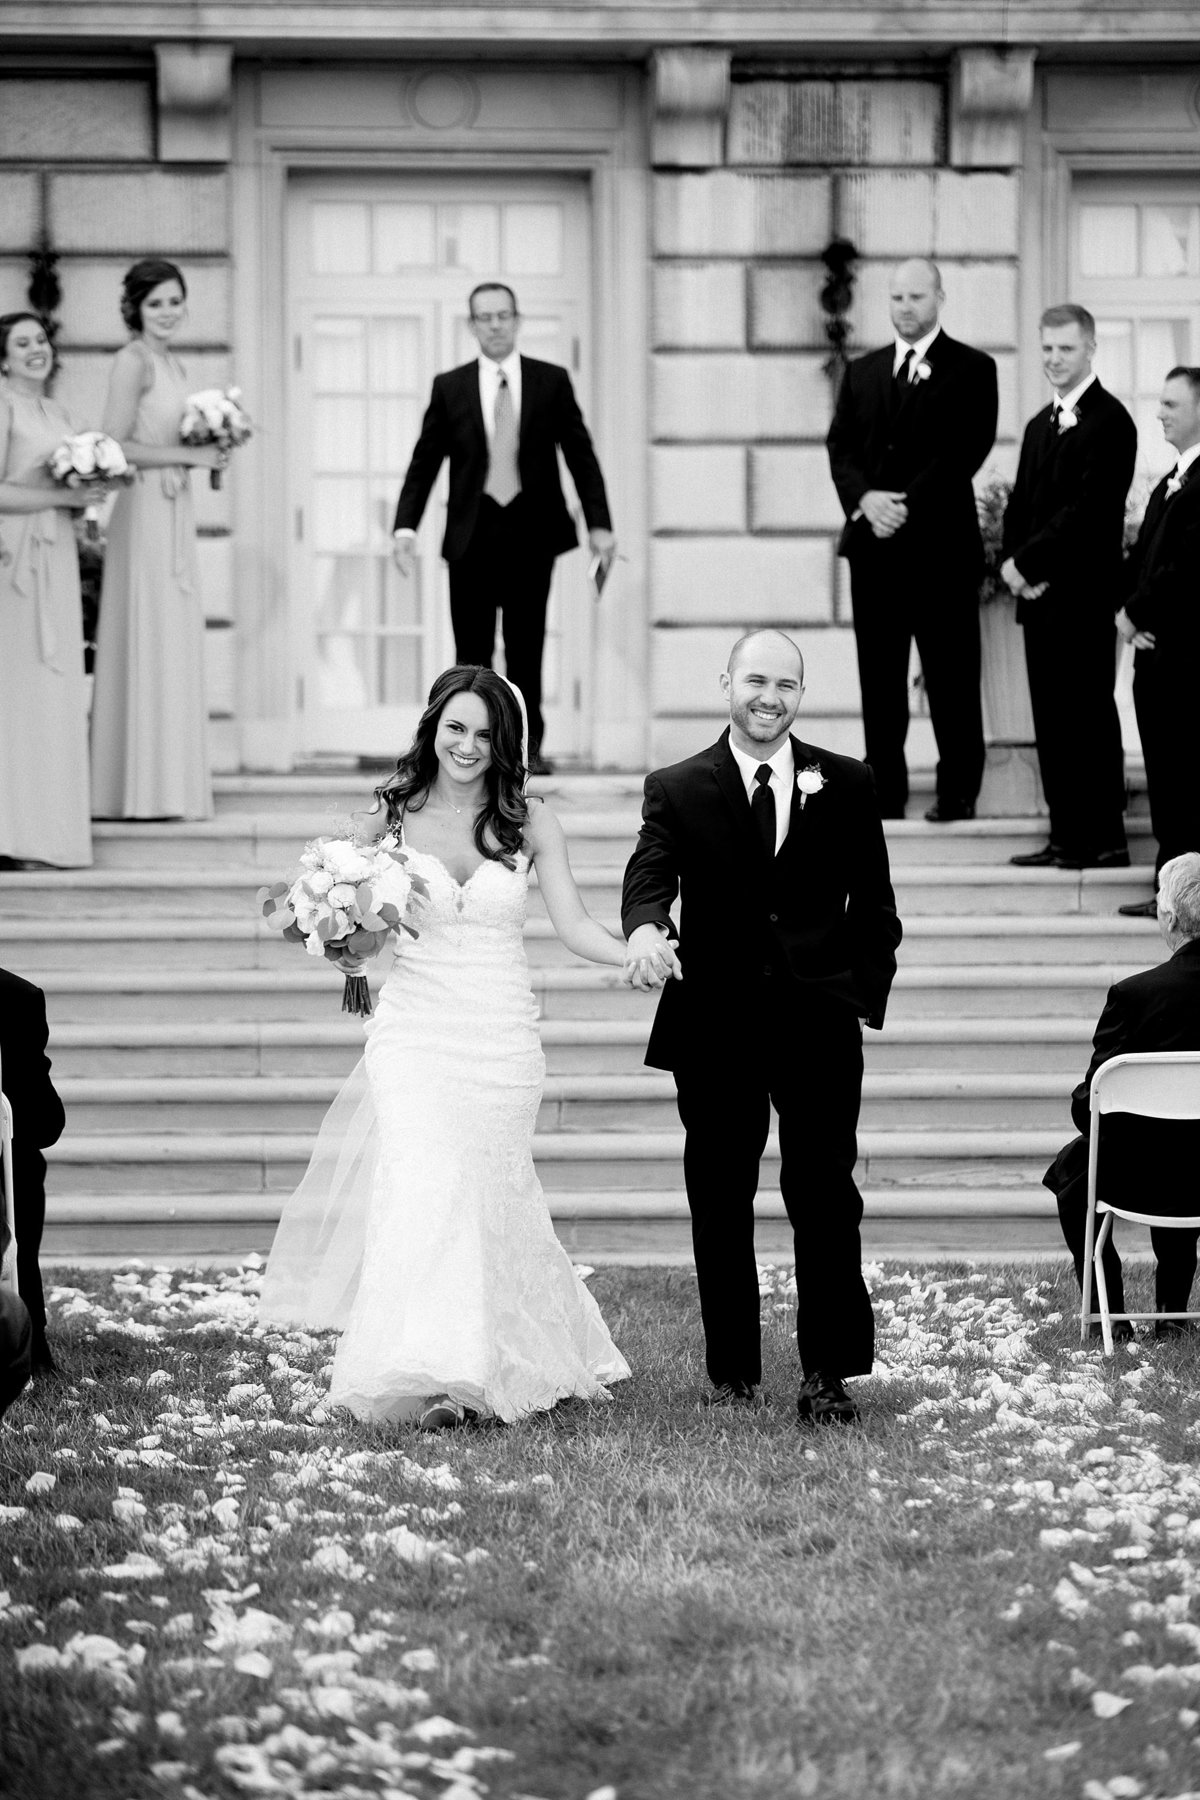 Shuster-Wedding-Grosse-Pointe-War-Memorial-Breanne-Rochelle-Photography95